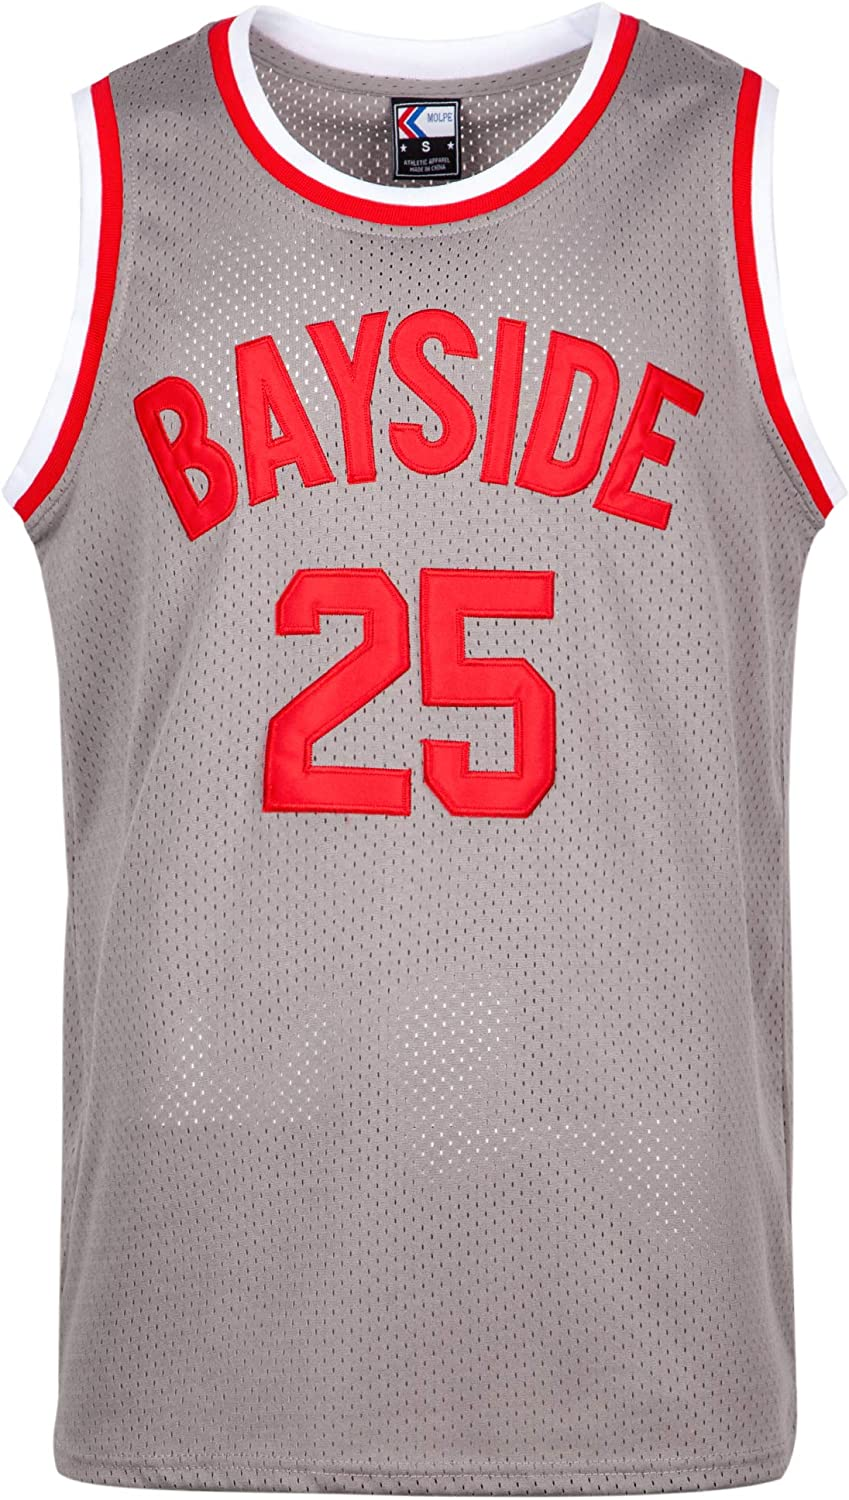 pictures of basketball jerseys